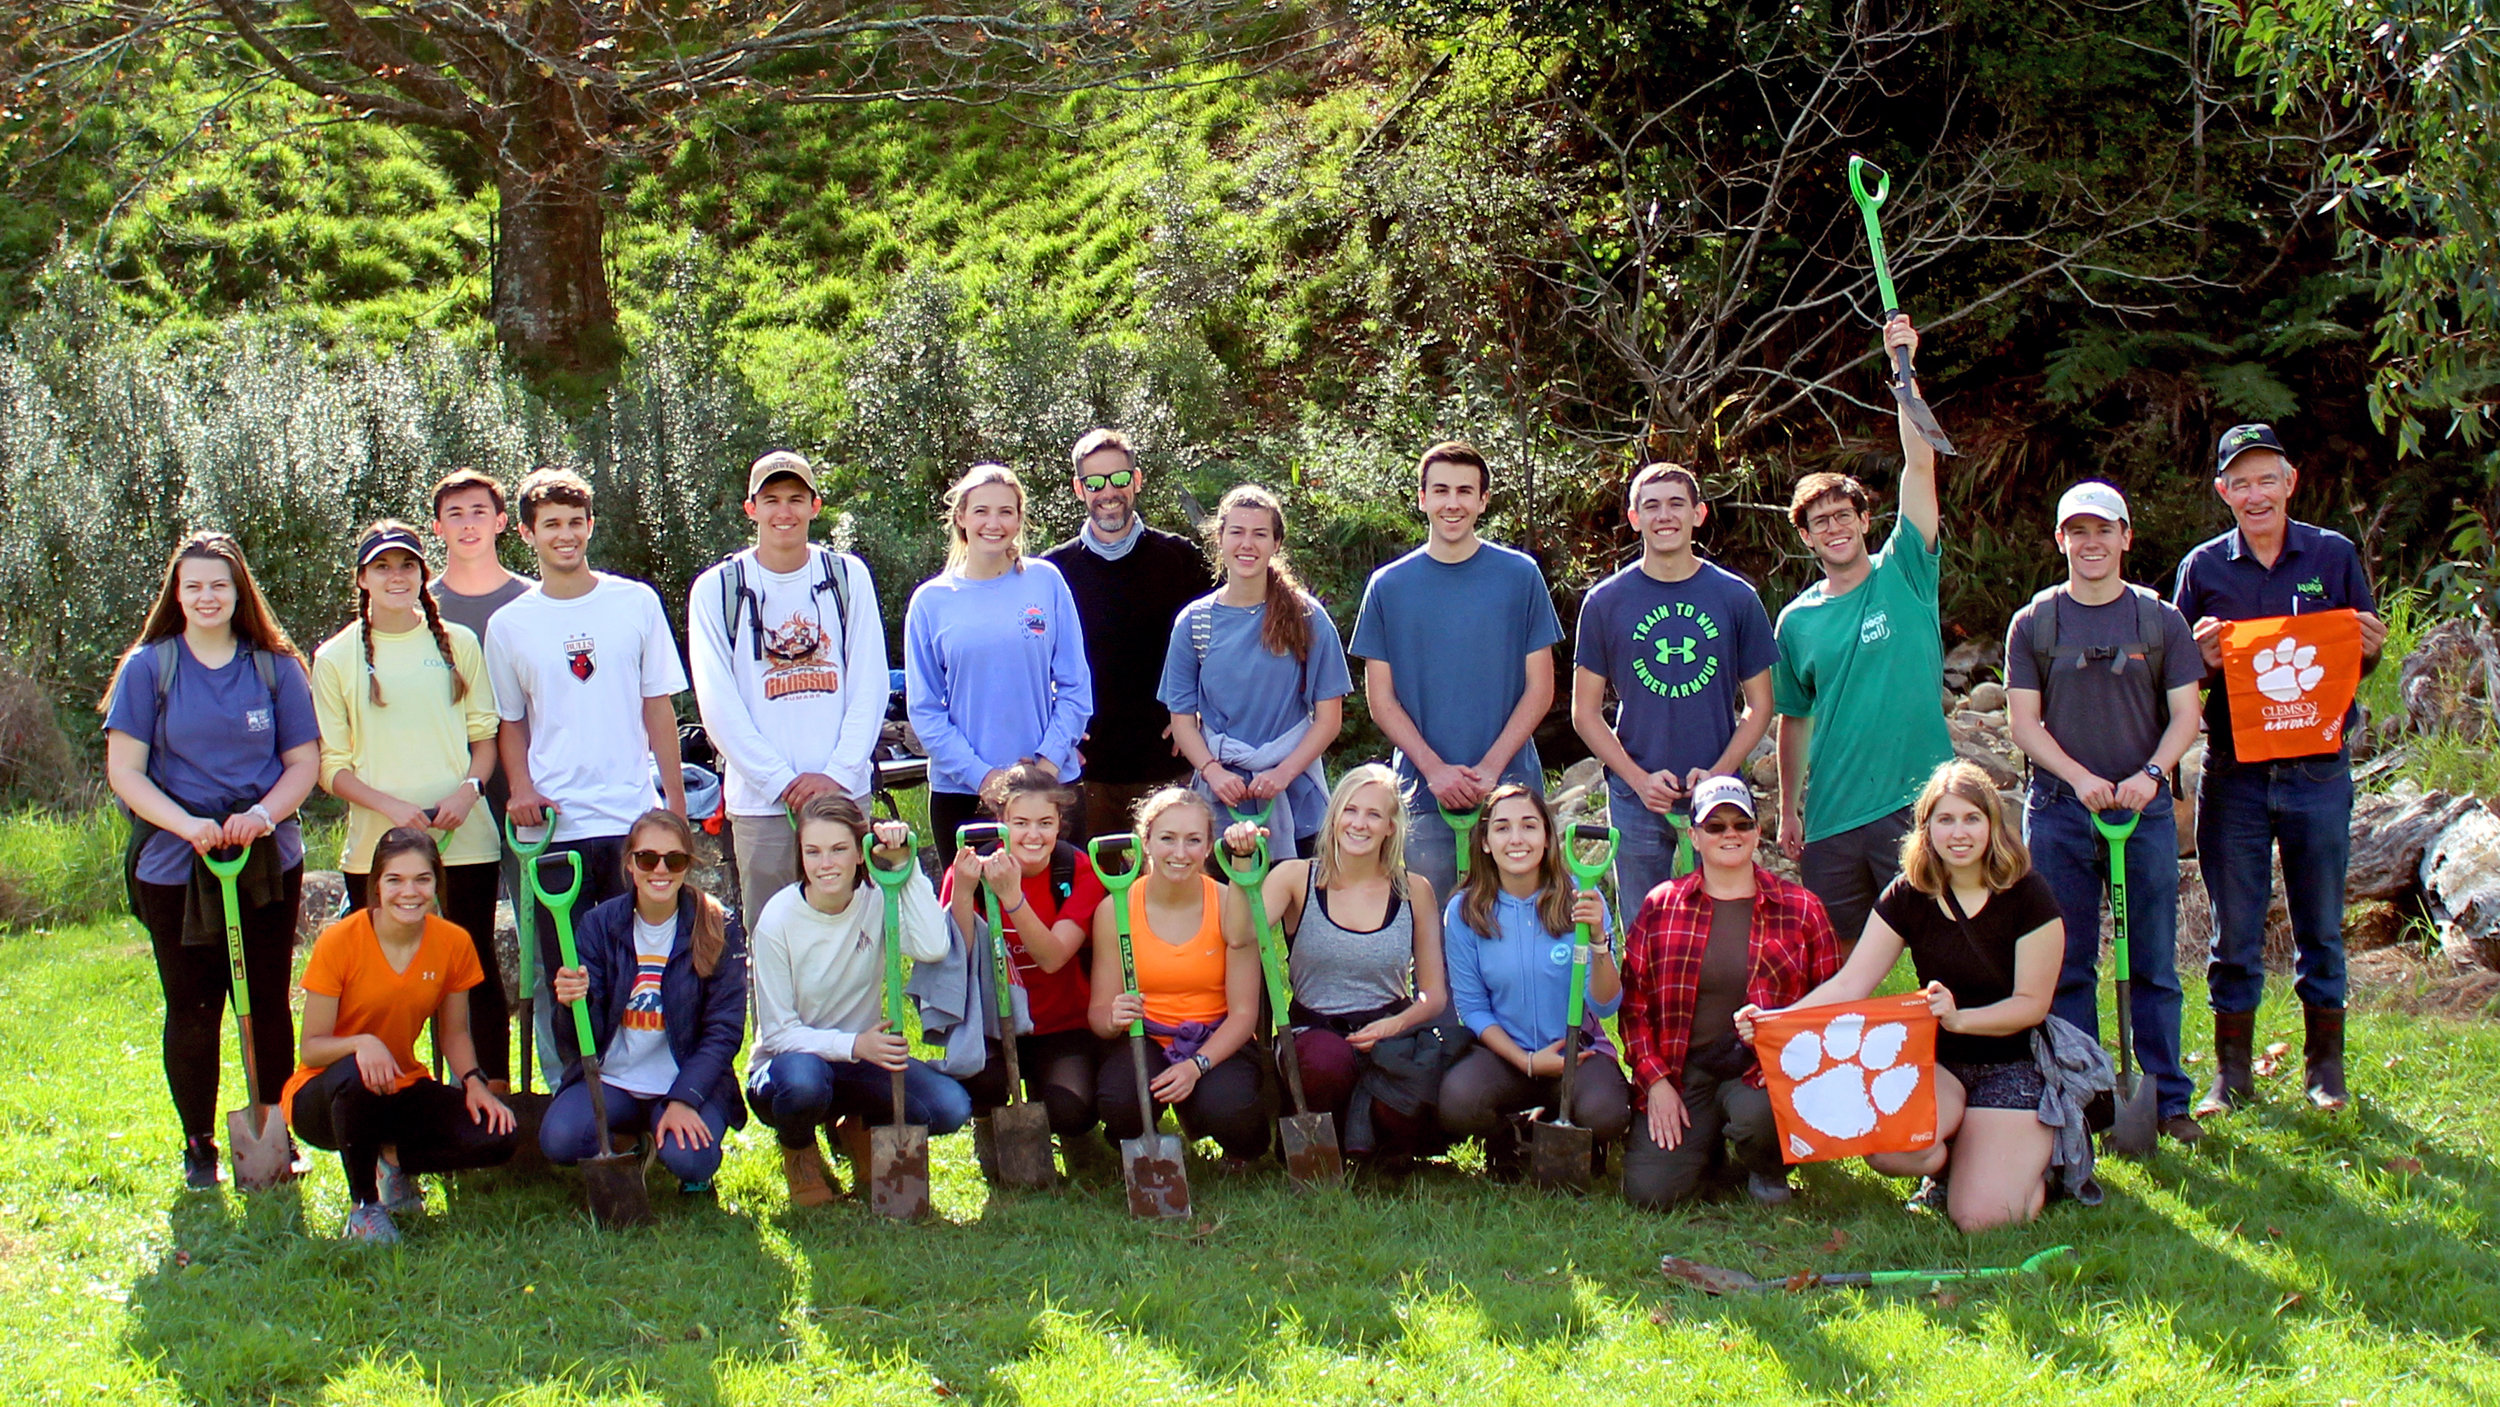 CLEMSON UNIVERSITY - SERVICE LEARNING & SUSTAINABILITY PROGRAM 2019   This program explores the interdisciplinary & complex relationship between humans and the environment. Students examine ecological restoration & resource conservation, while participating in long-term restoration projects & community outreach. '   Gallery